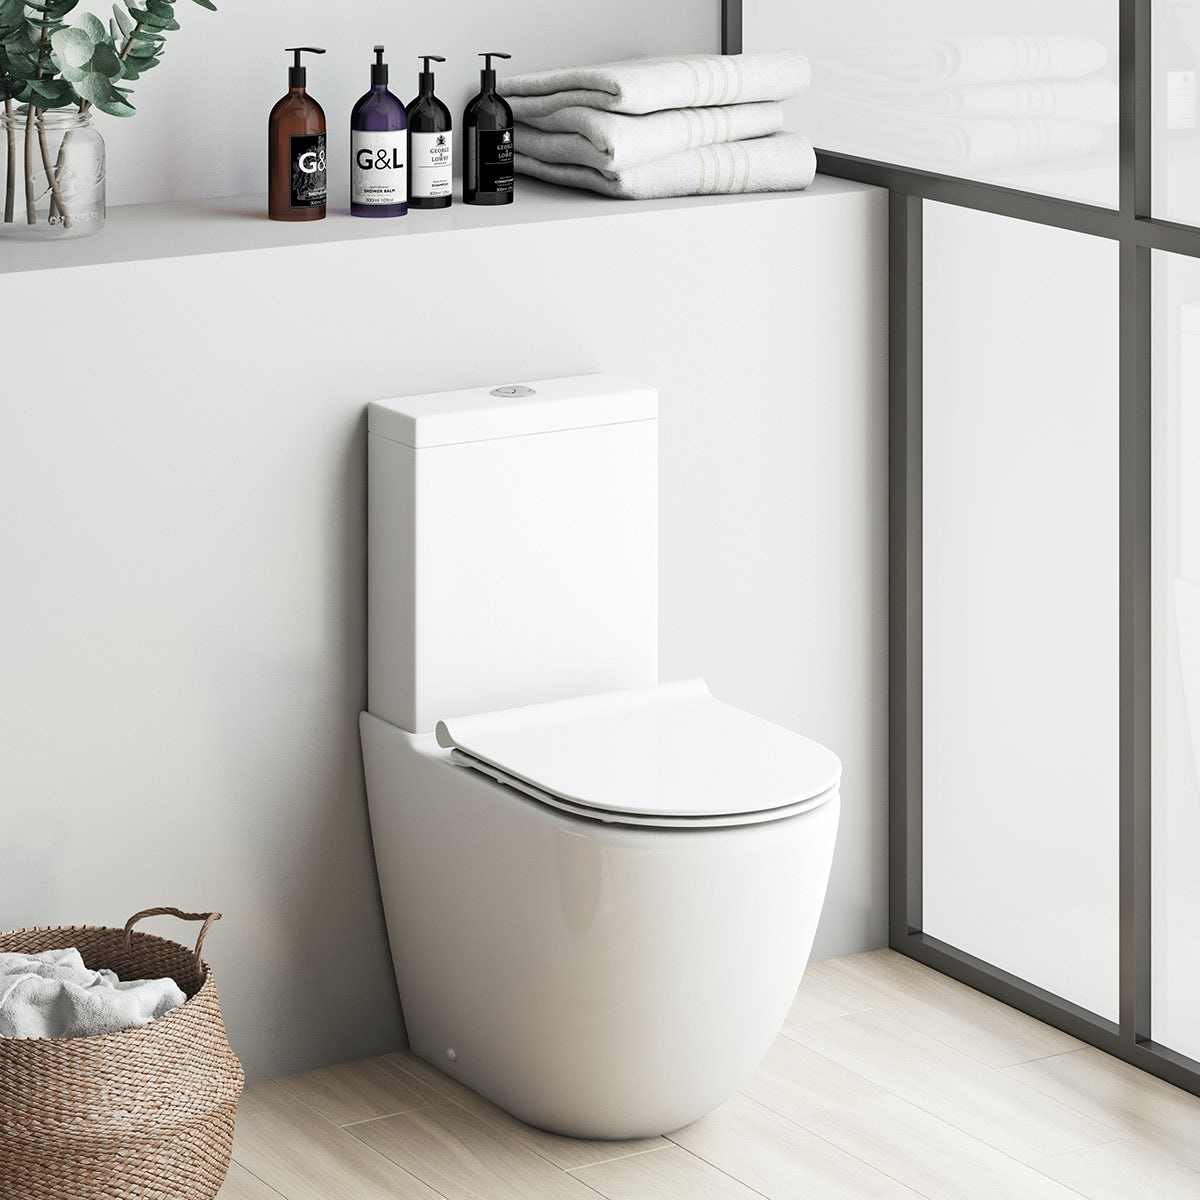 Mode Harrison close coupled toilet inc slimline soft close seat